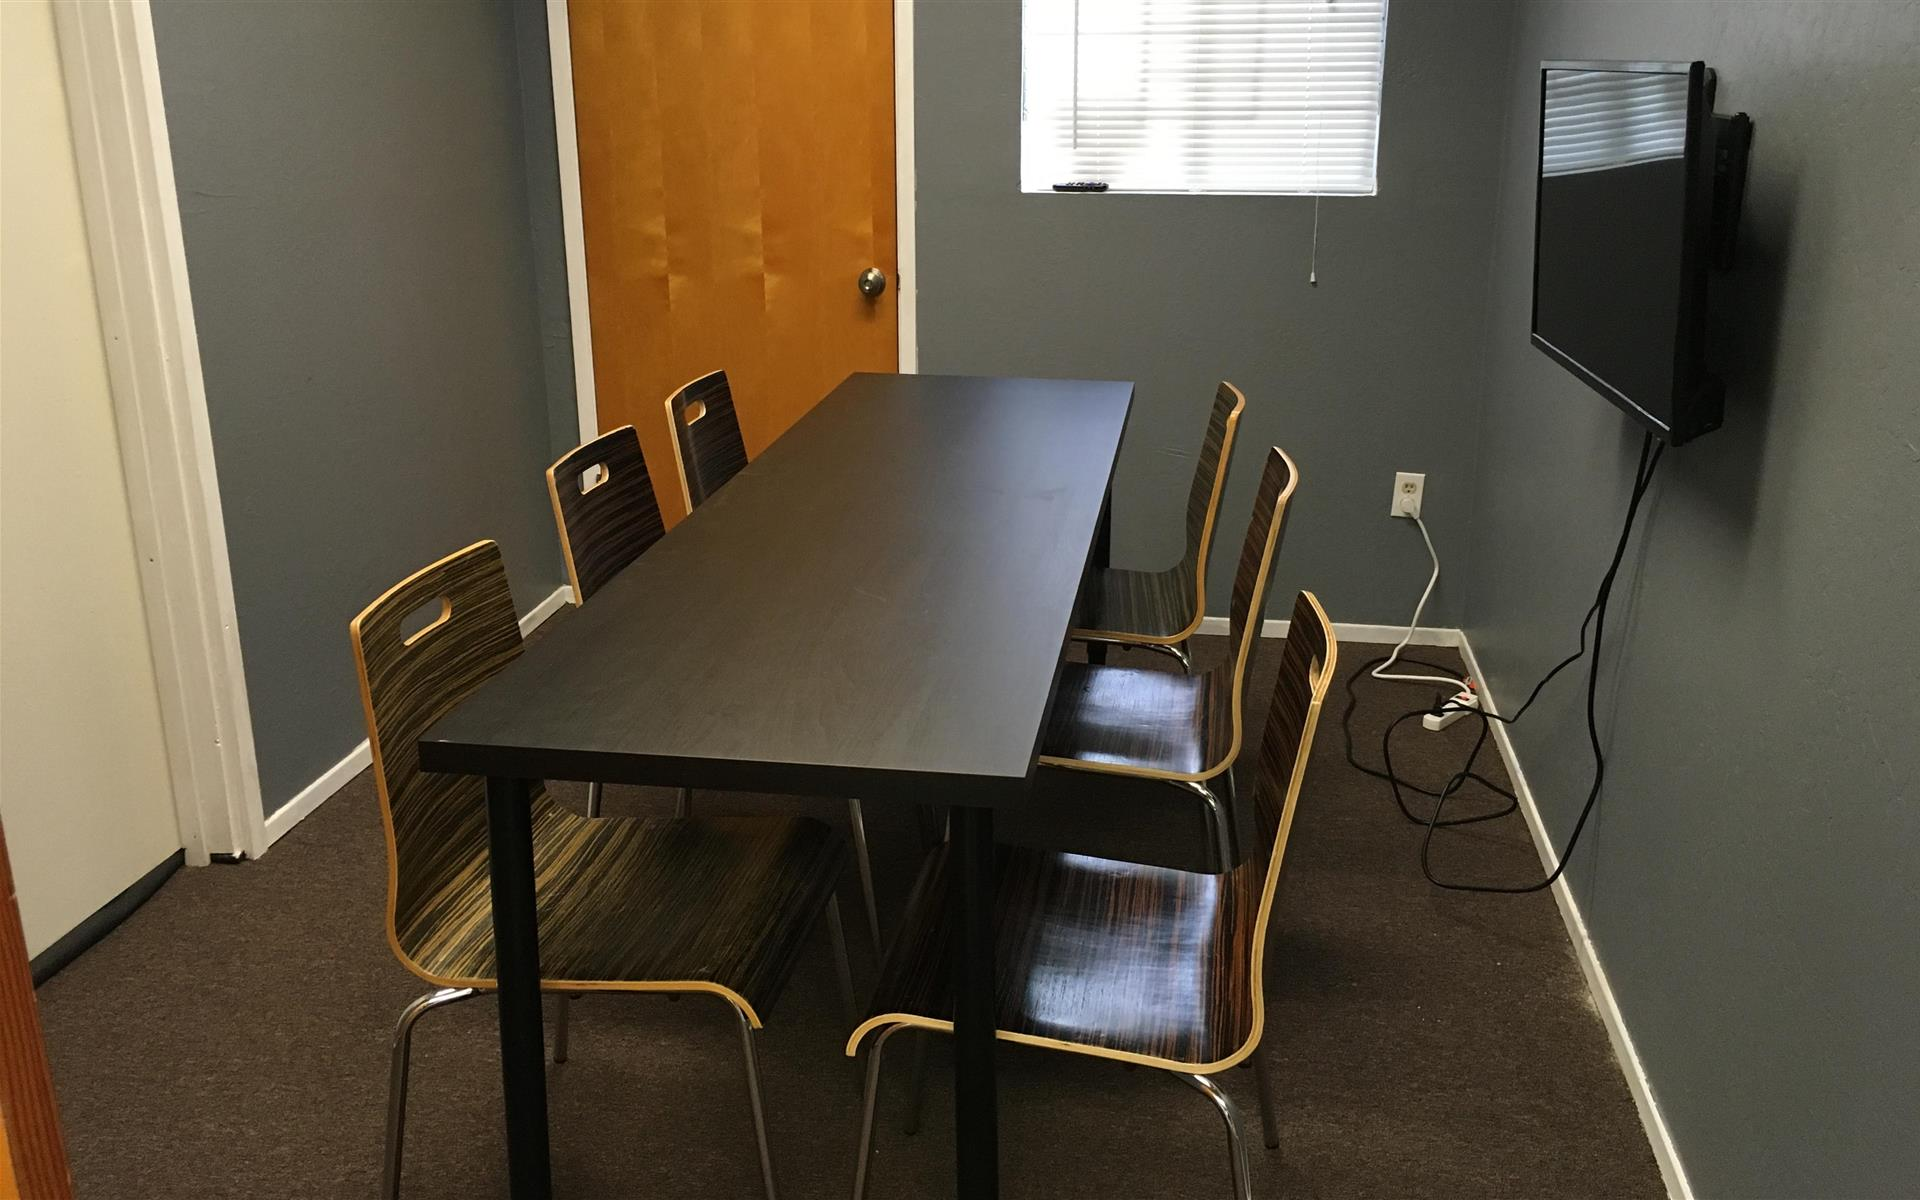 Cotton CORE Spaces - Conference Room for 4(150 Mbps Internet)